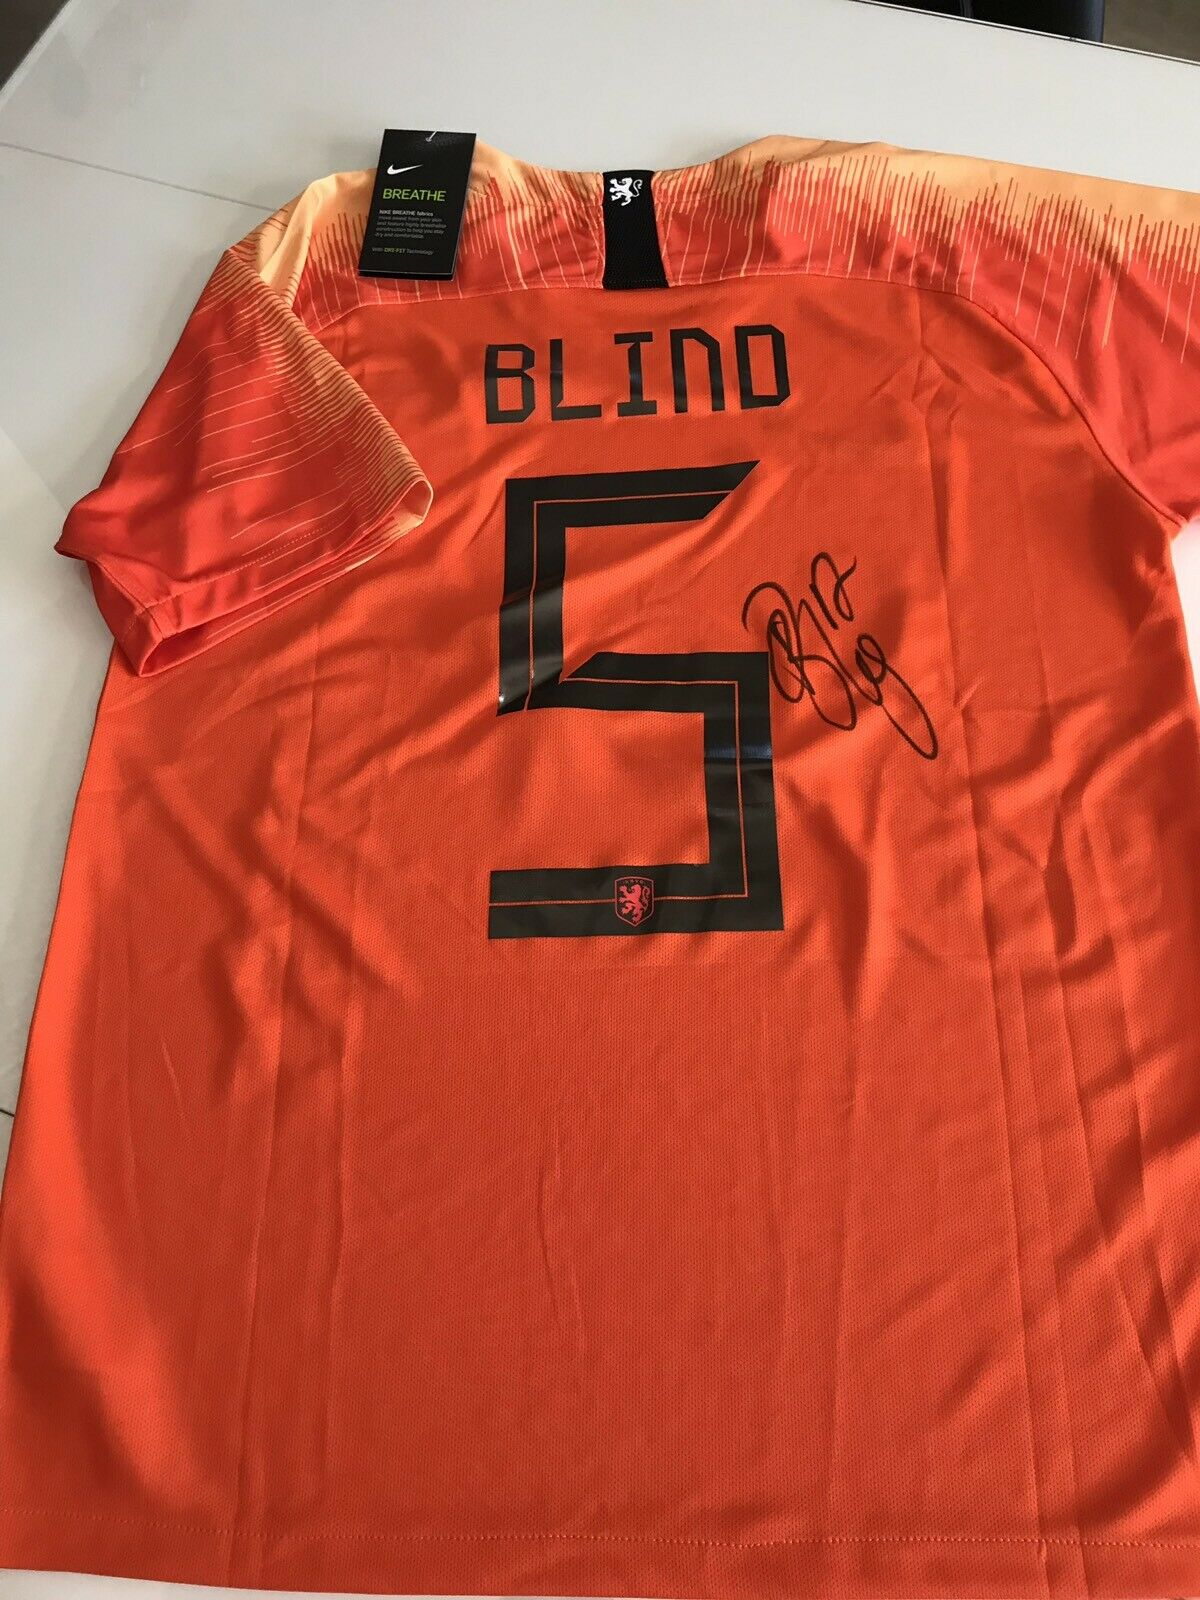 Maillot Footbtutti Hollee Daley Blind  Signé Avec COA Ajax uomochester United